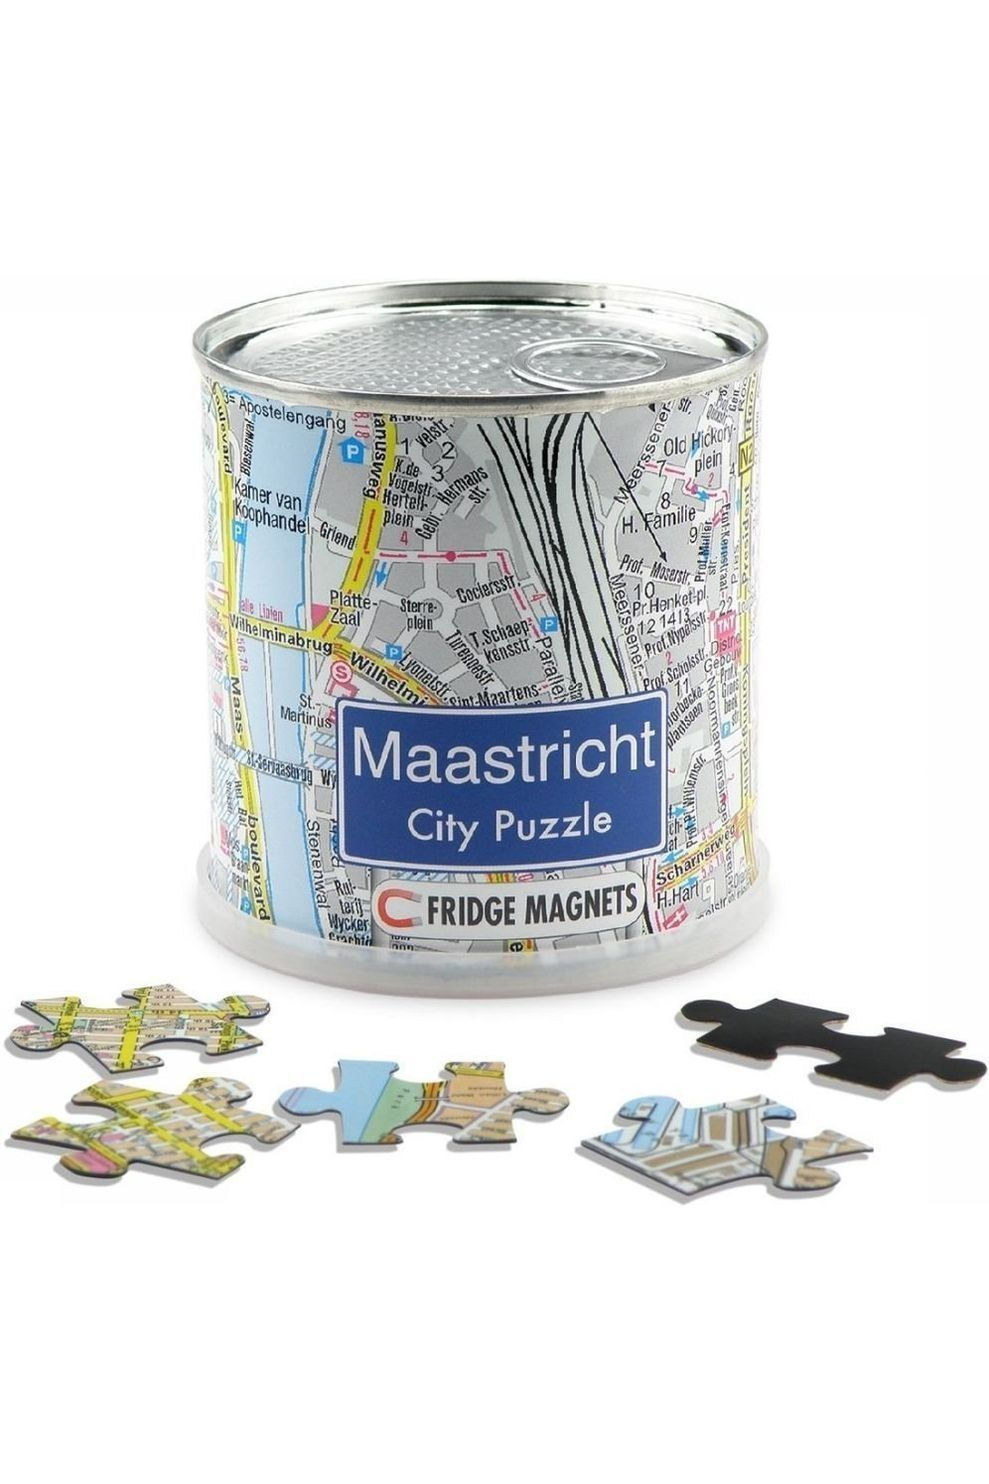 EXTRAGOODS Maastricht City Puzzle Magnets - 2015